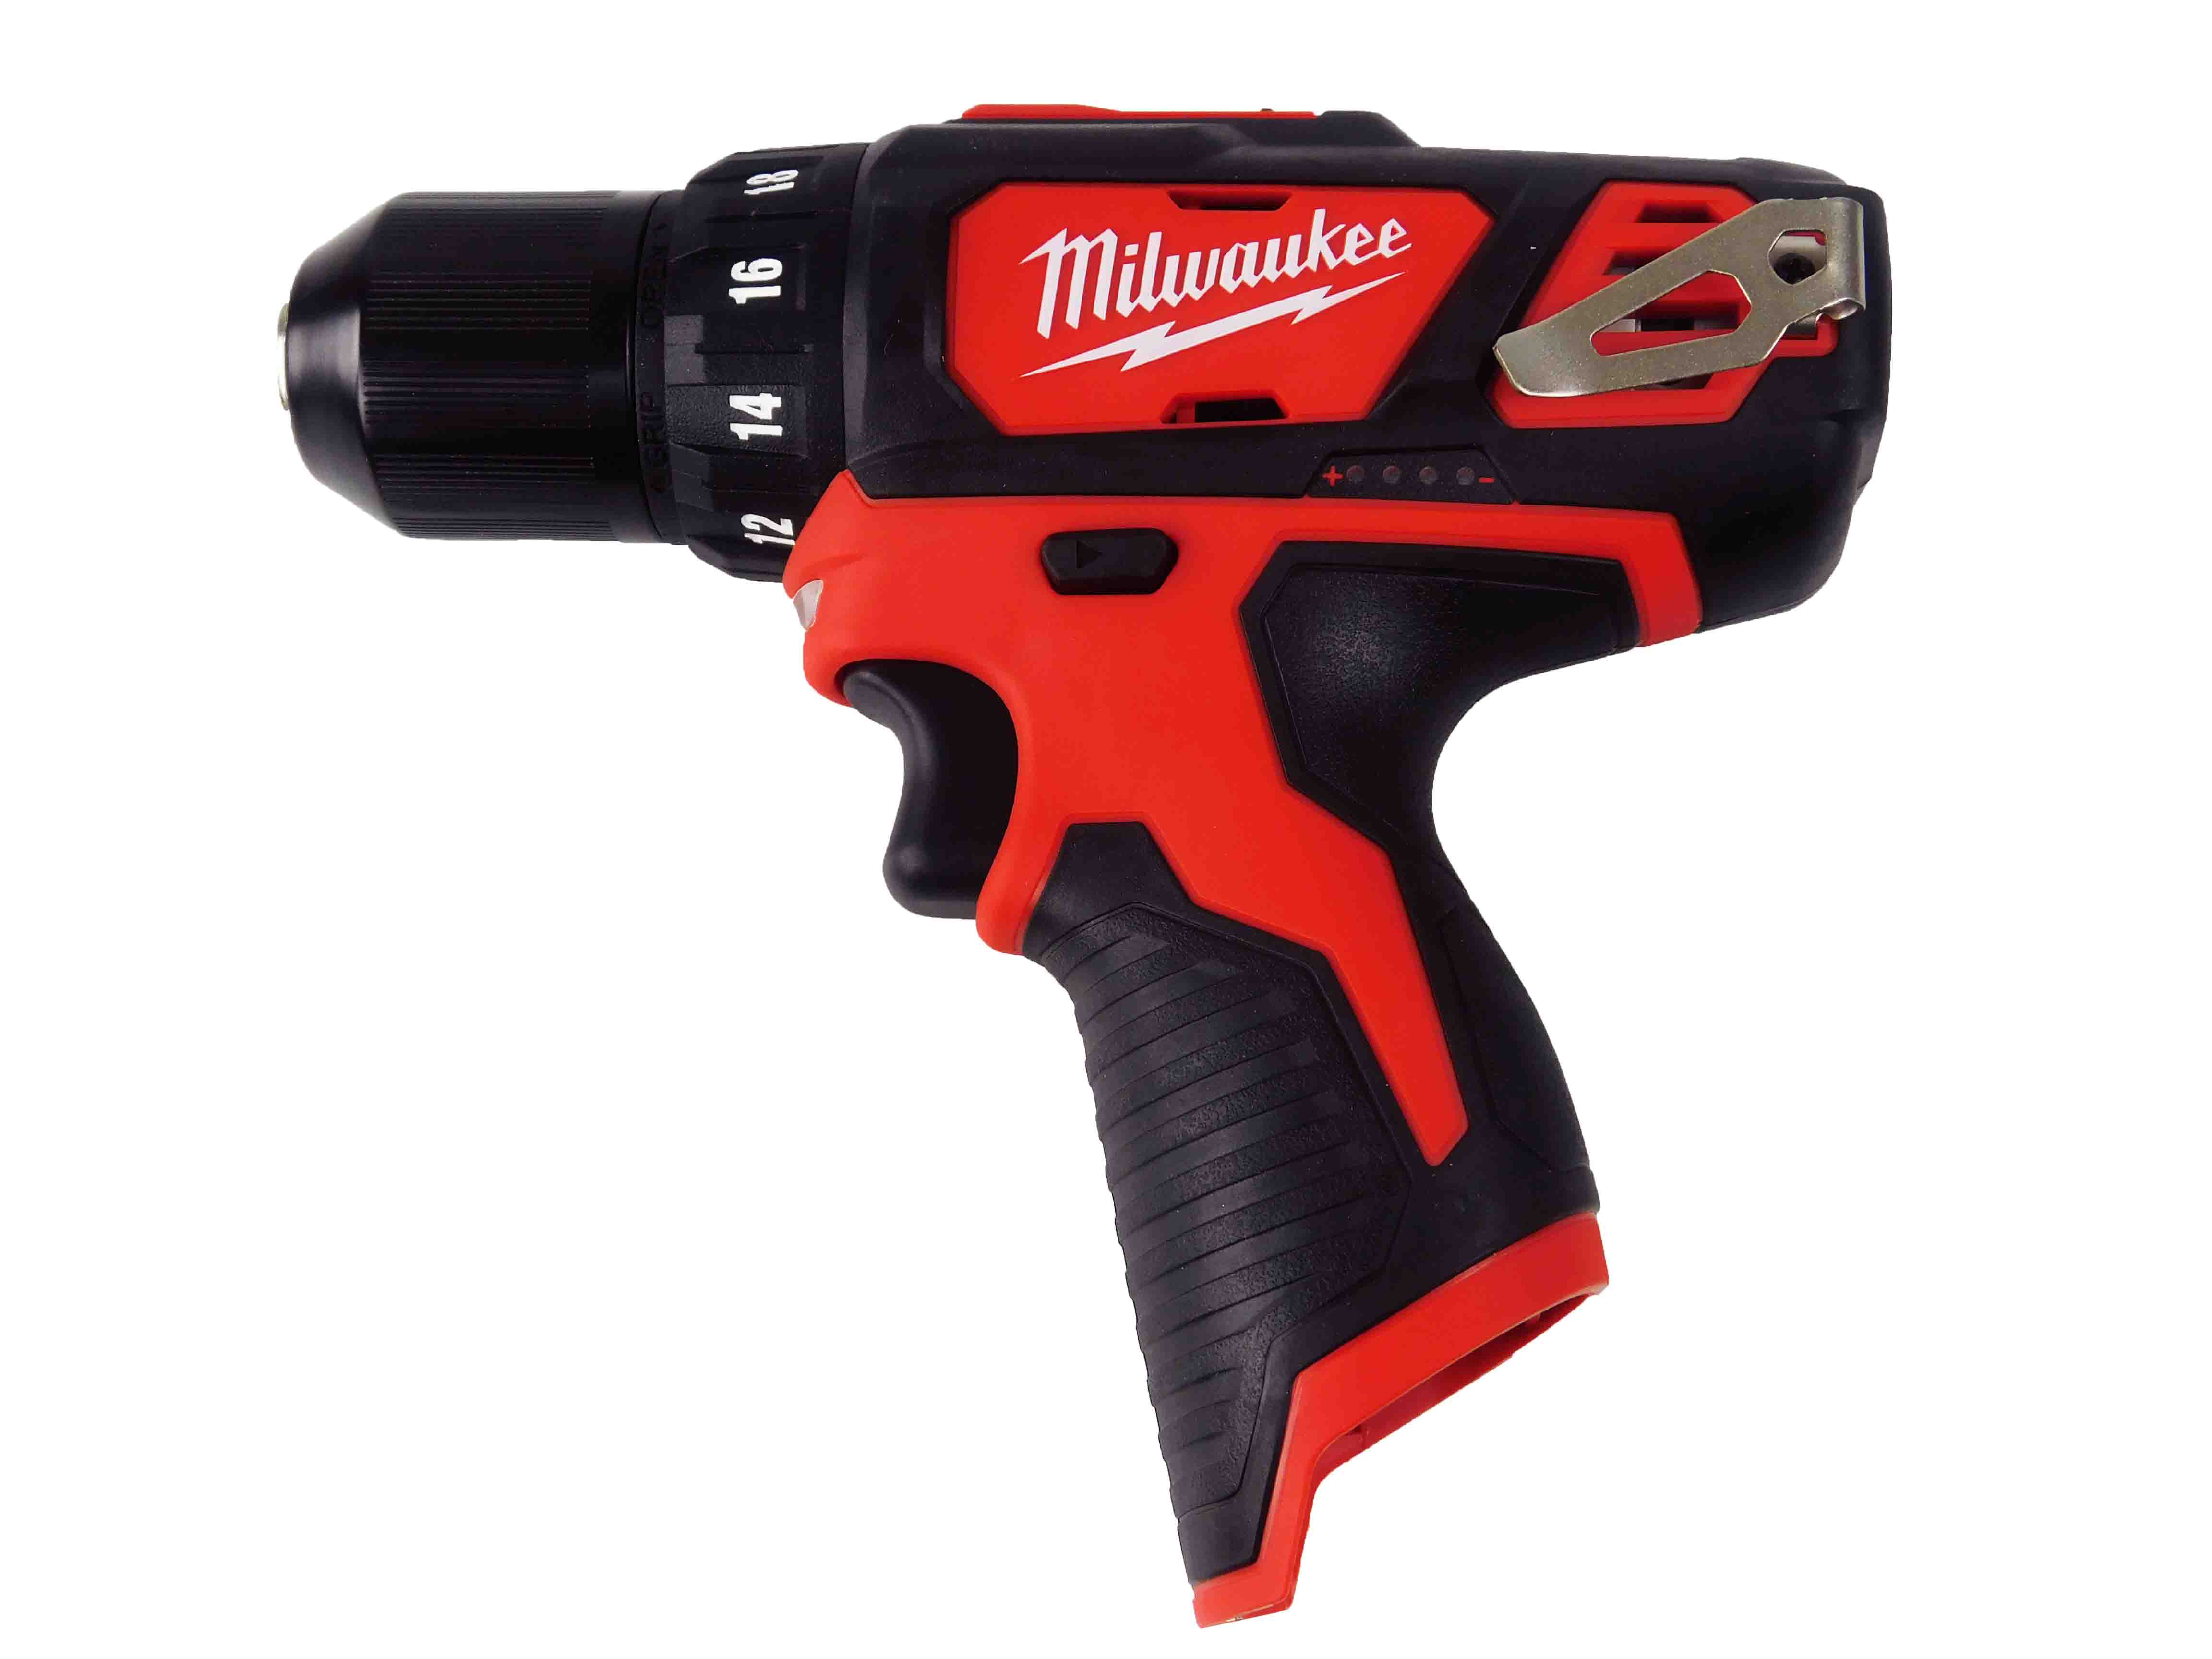 "Milwaukee 2407-20 12V M12 3/8"" Cordless Drill, Tool Only"